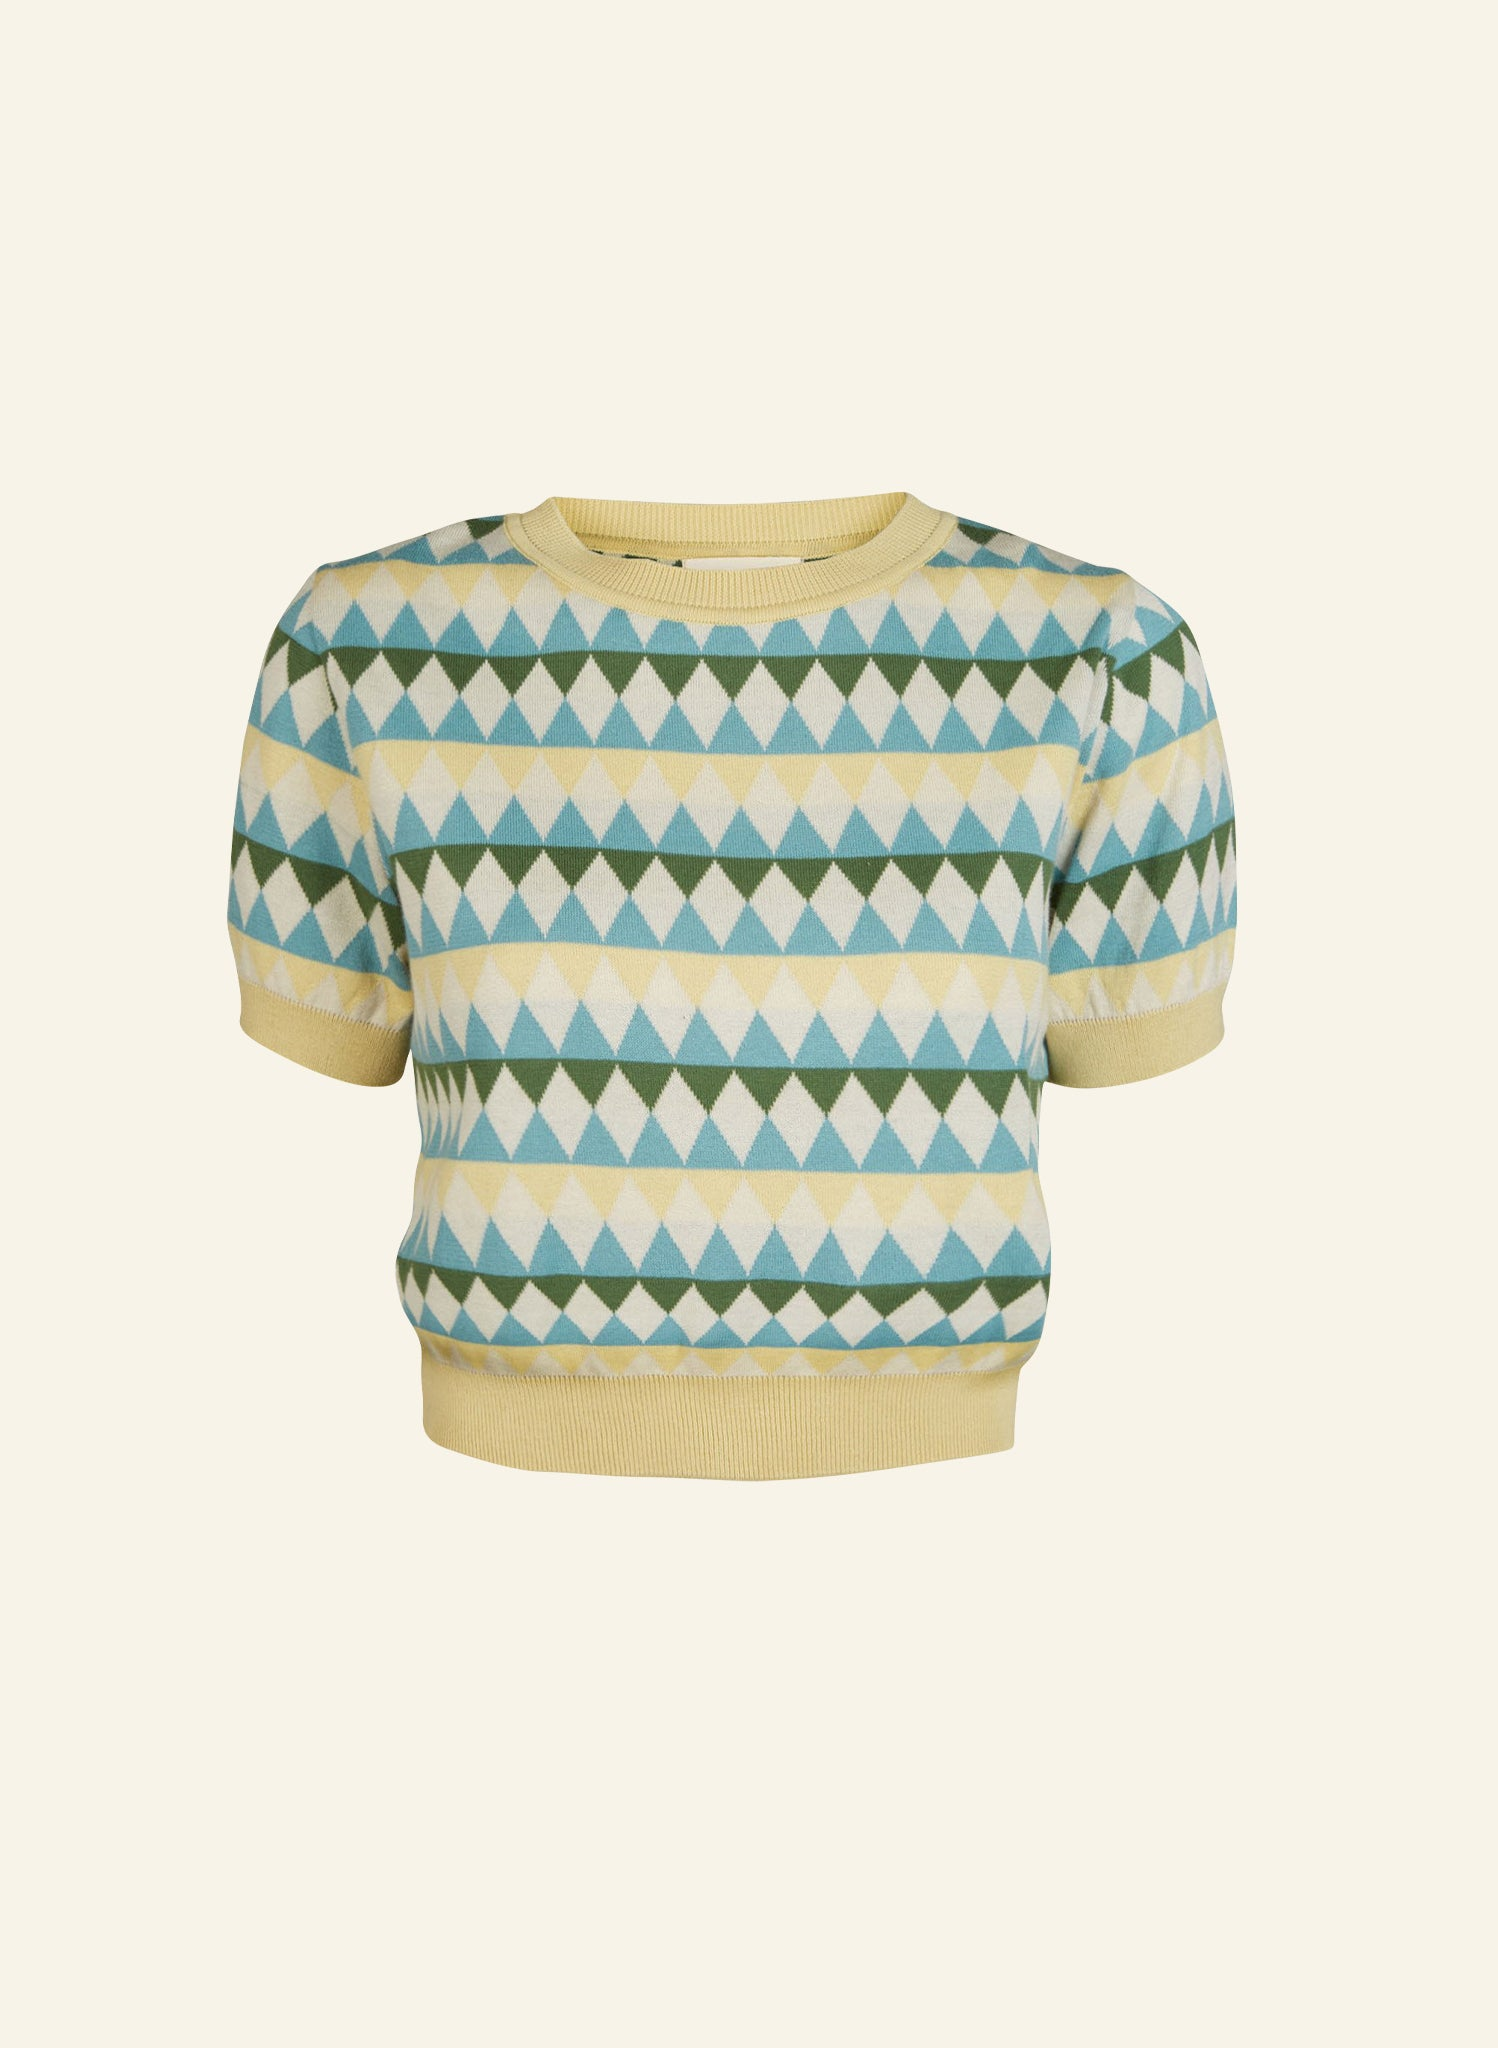 Eve Harlequin Knitted Top - Teal and Lemon | Organic Cotton